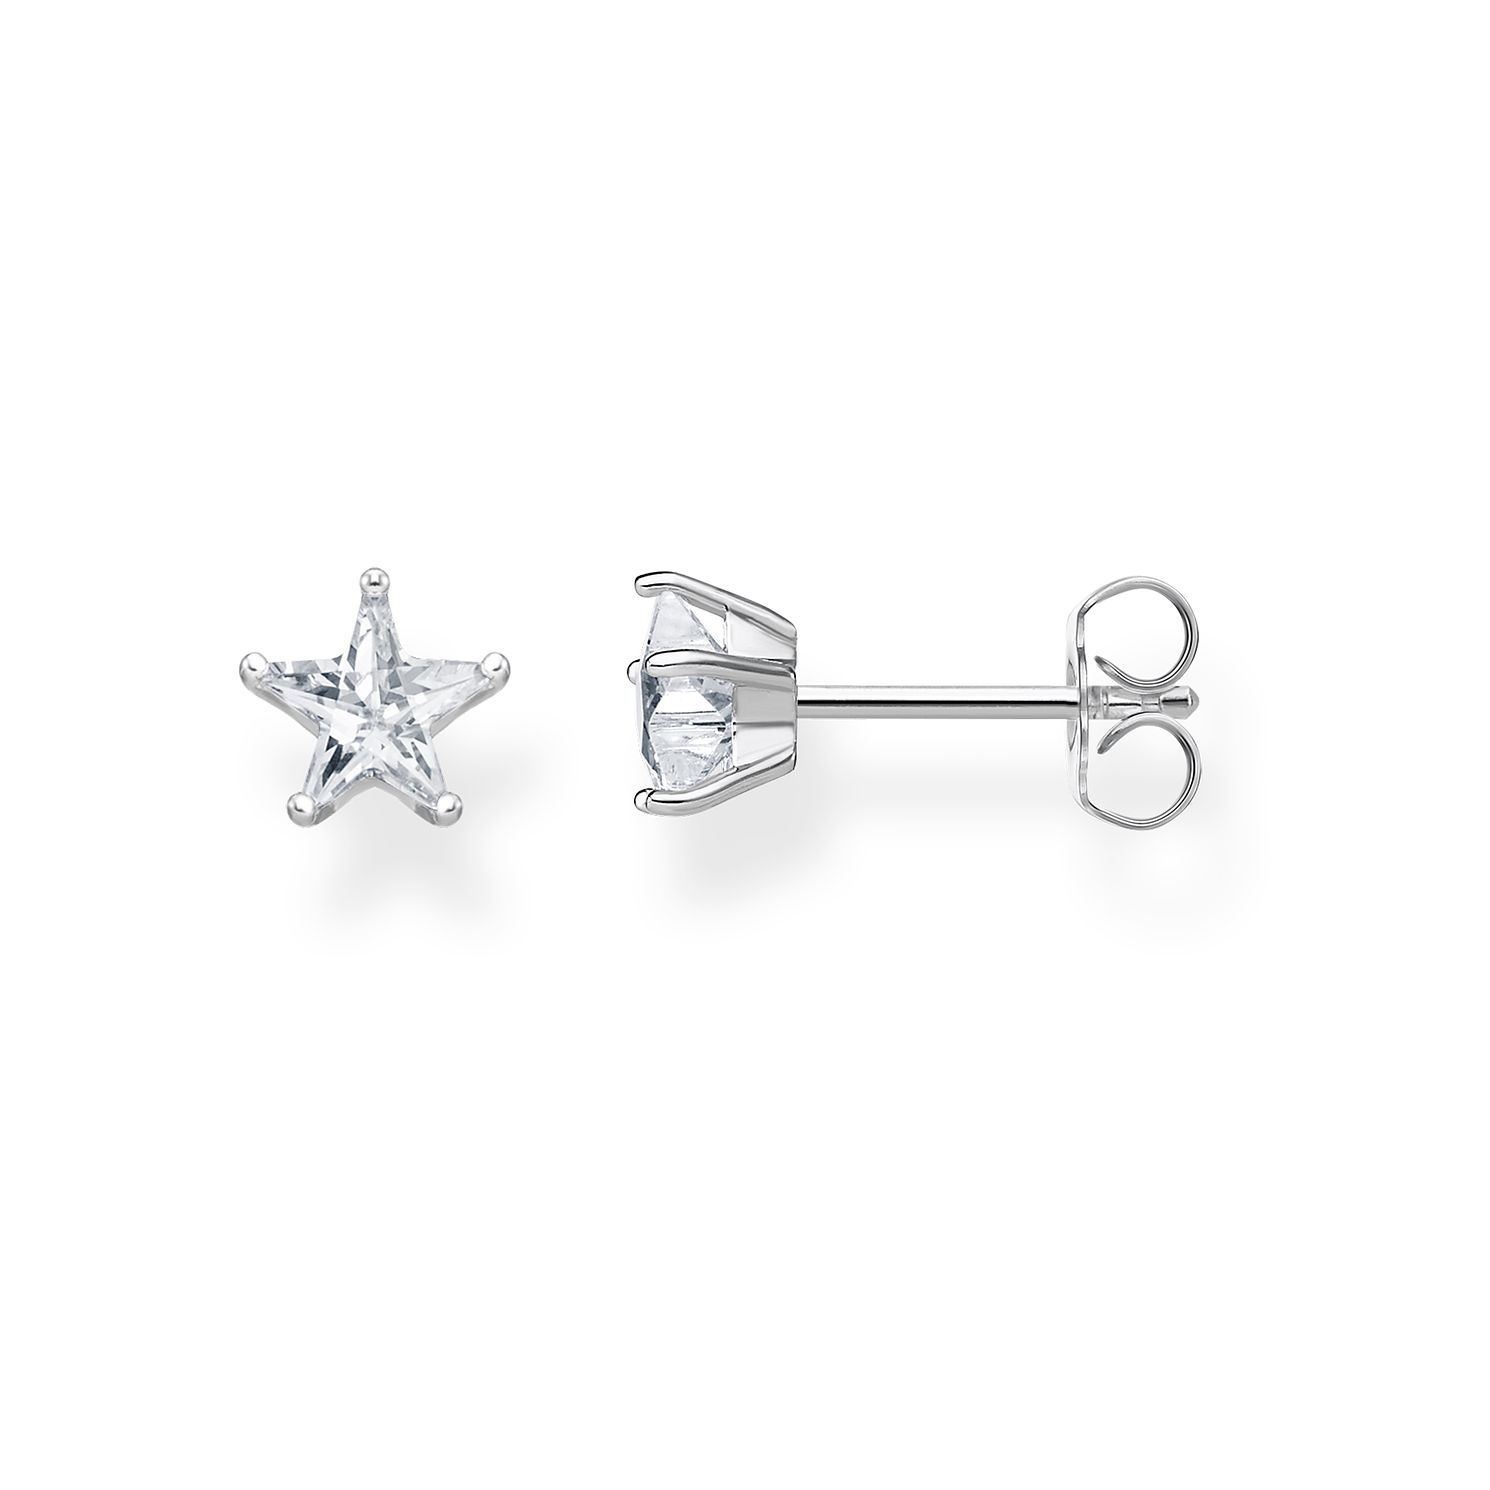 Thomas Sabo Sterling Silver Magic Star Stud Earrings - Product number 4007476